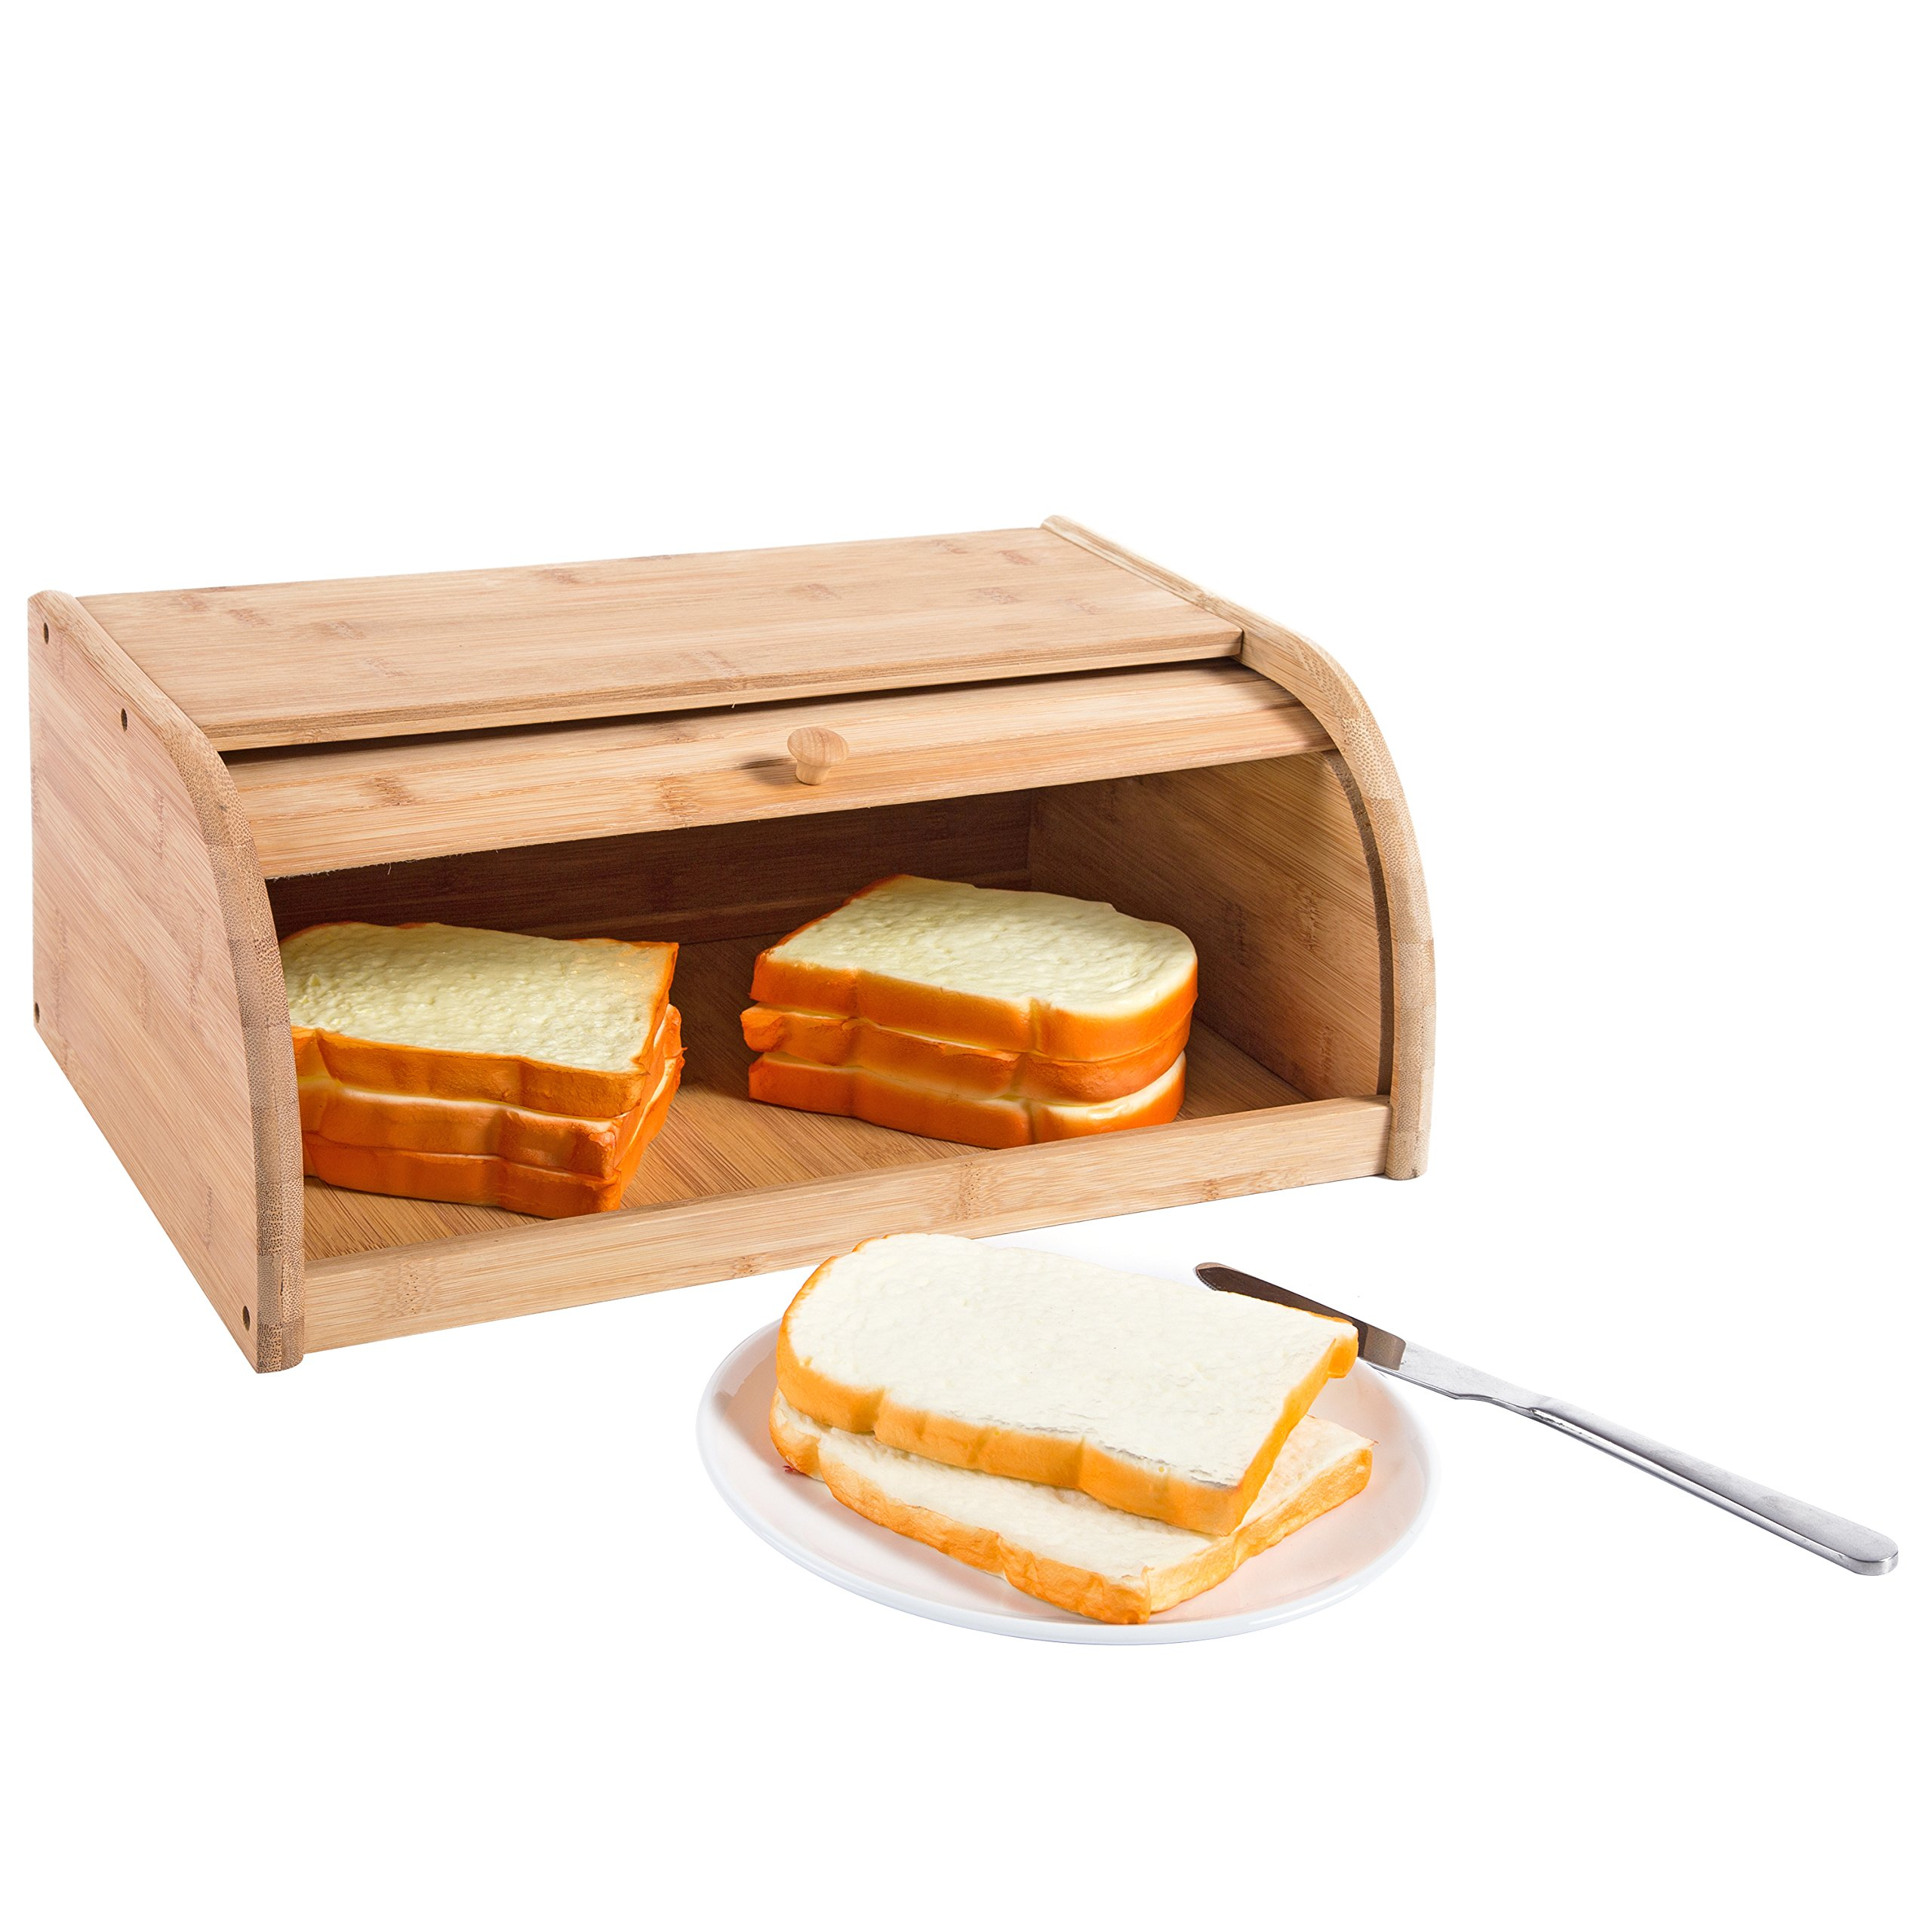 16 inch Kitchen Natural Wooden Bamboo Rolltop Bread Box Food Storage - MyGift by MyGift (Image #5)